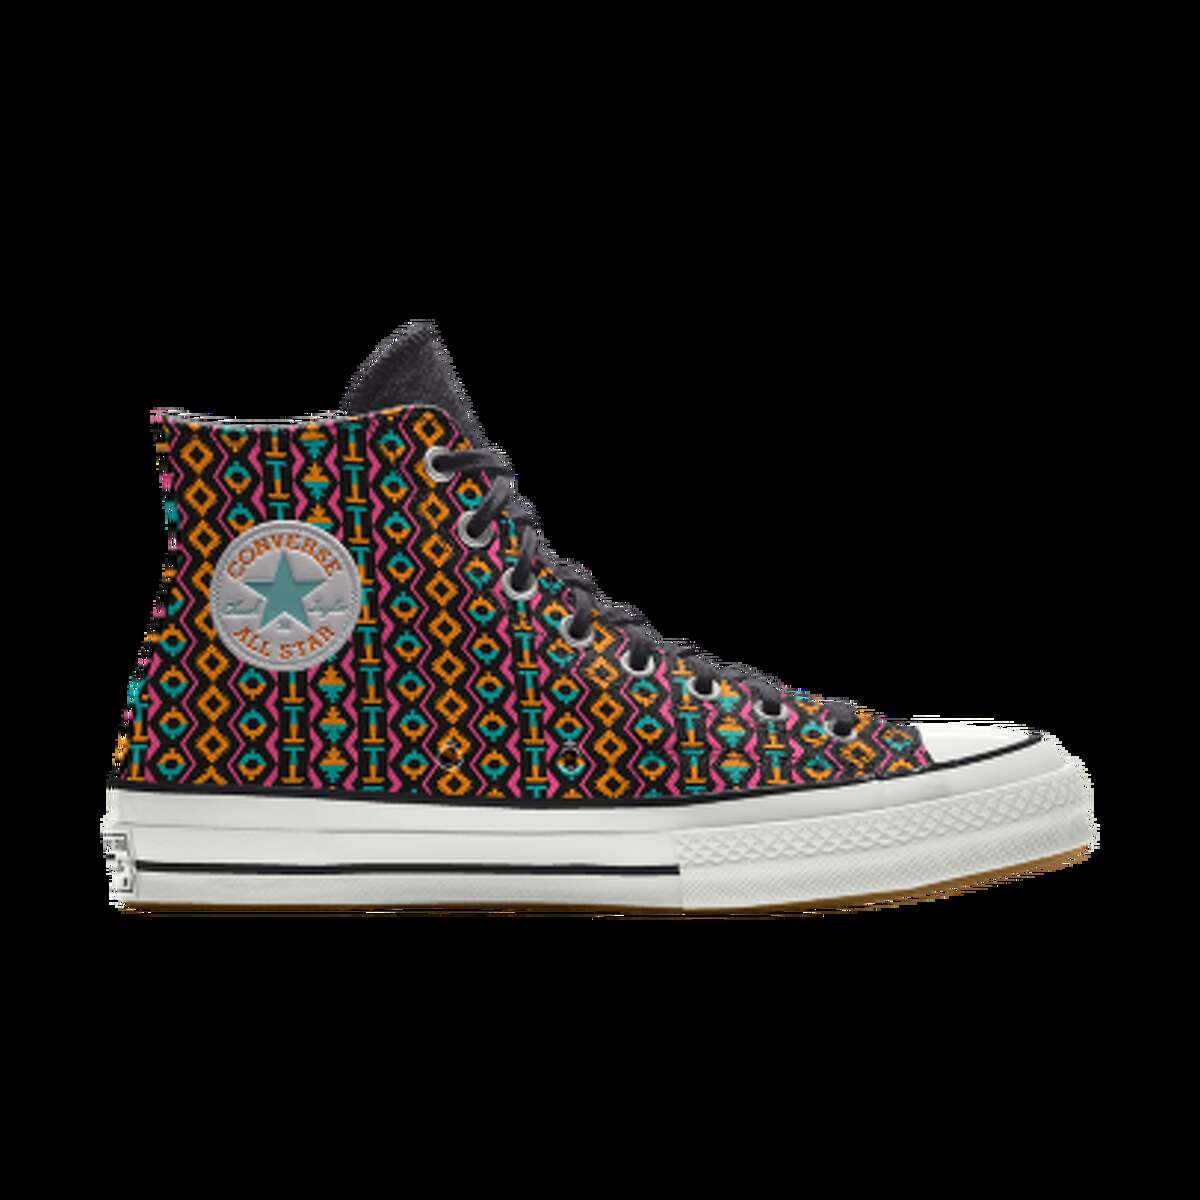 The high-top sneakers start at $115 and feature three customizable designs. There's a black base with a Fieesta-hued Spur logo on the body, a white canvas with